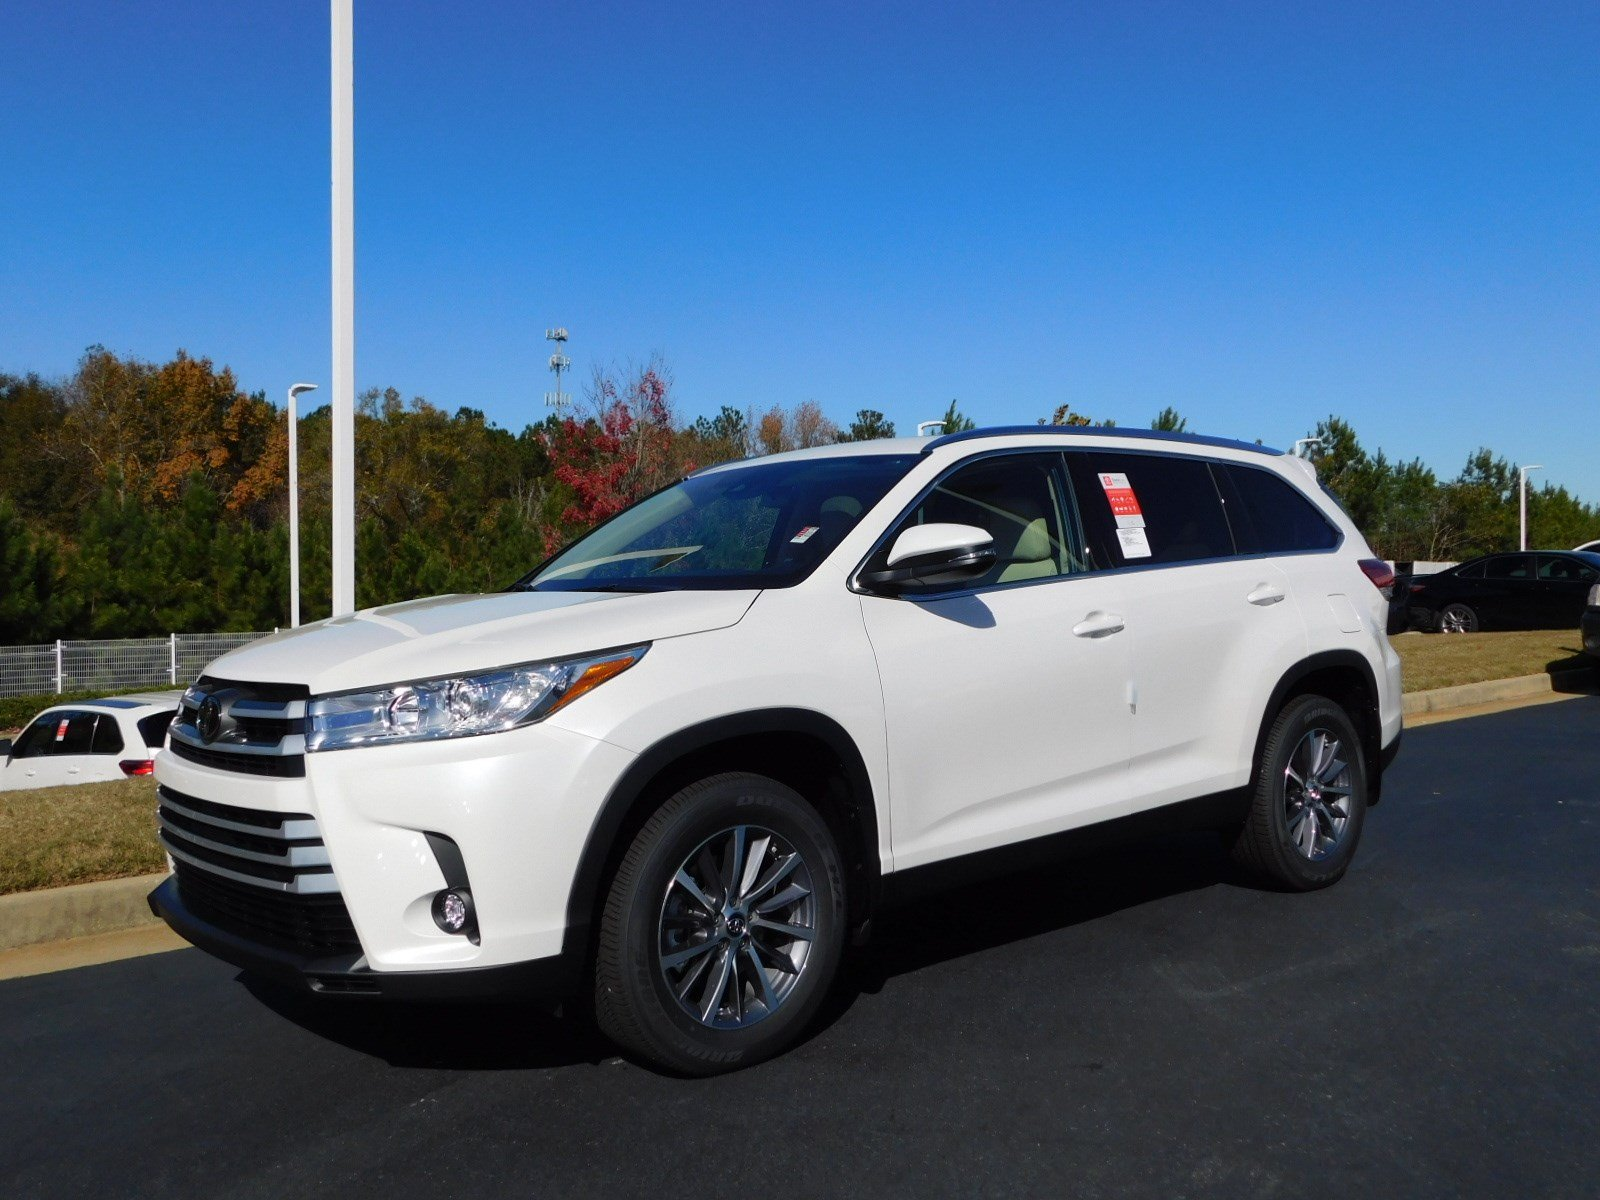 New 2019 Toyota Highlander Xle Sport Utility In Macon S569885